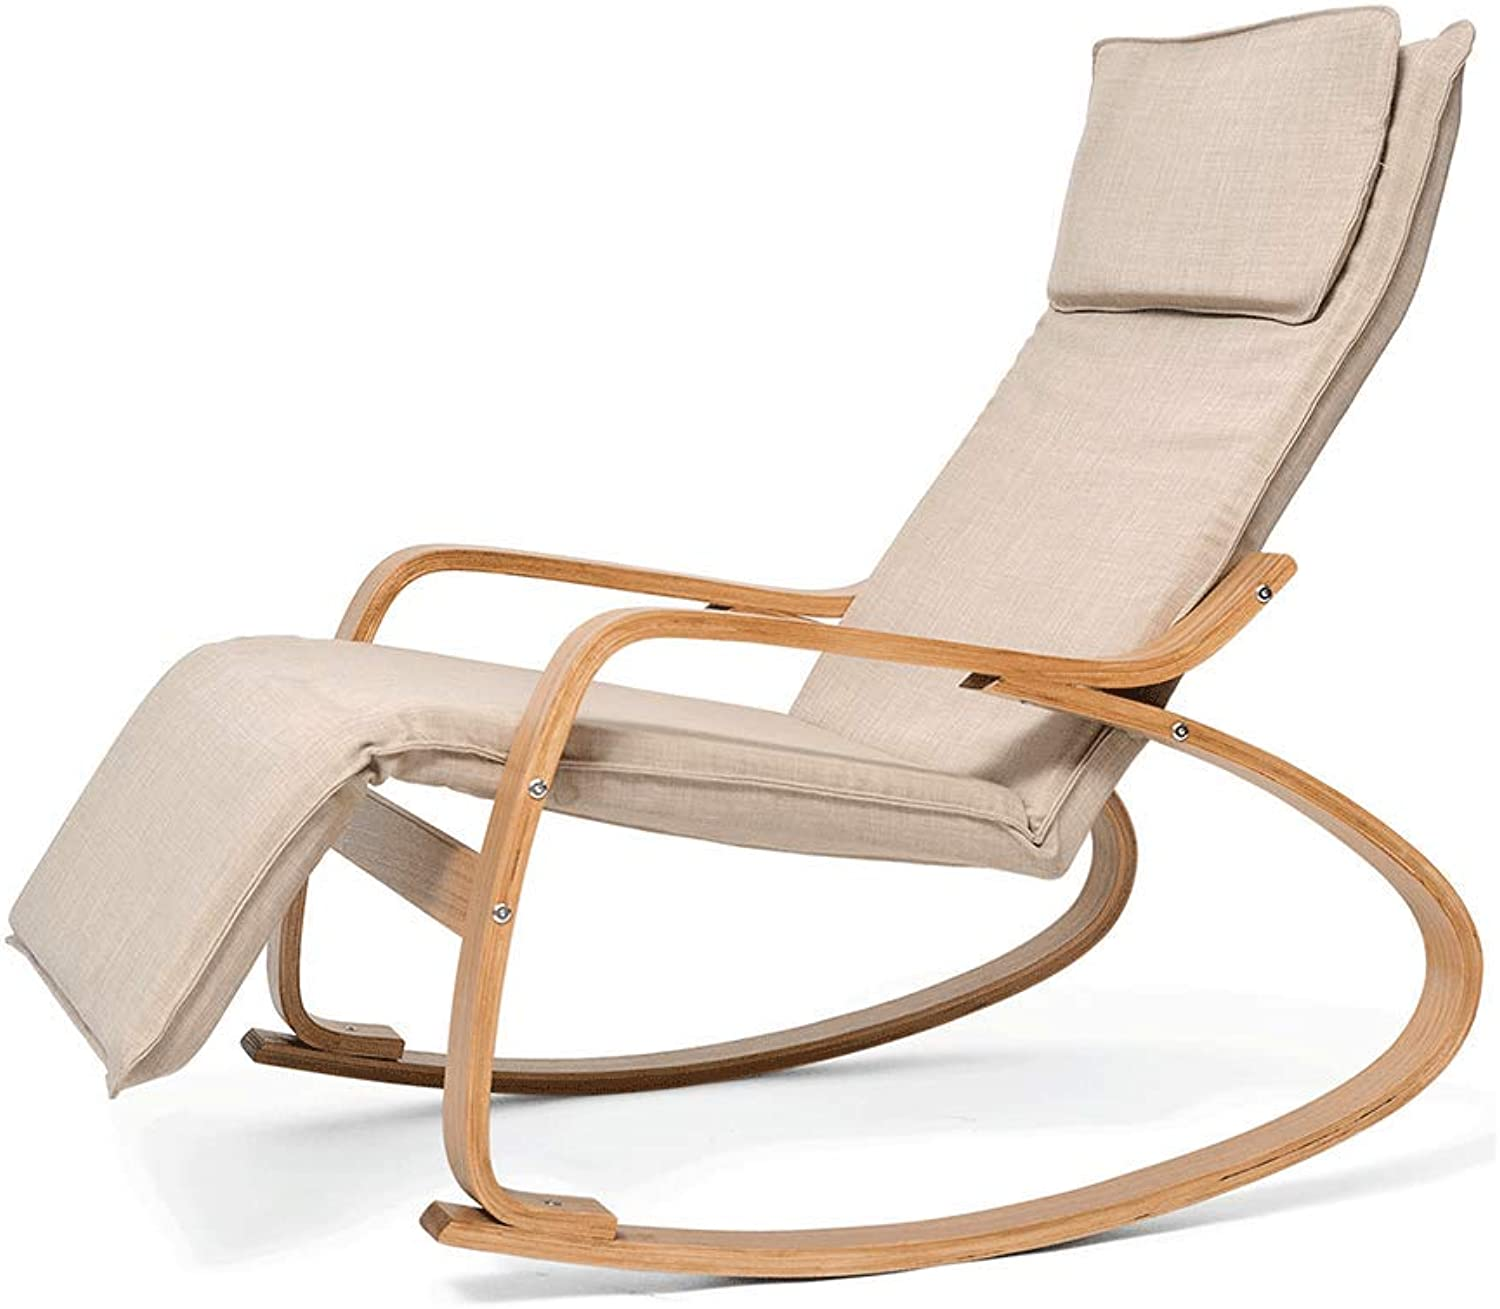 Solid Wood Rocking Chair Lounge Chair Office Lunch Break Chair Fabric Easy Chair Balcony Rocking Chair Recliner Lazy Chair (color   Natural)